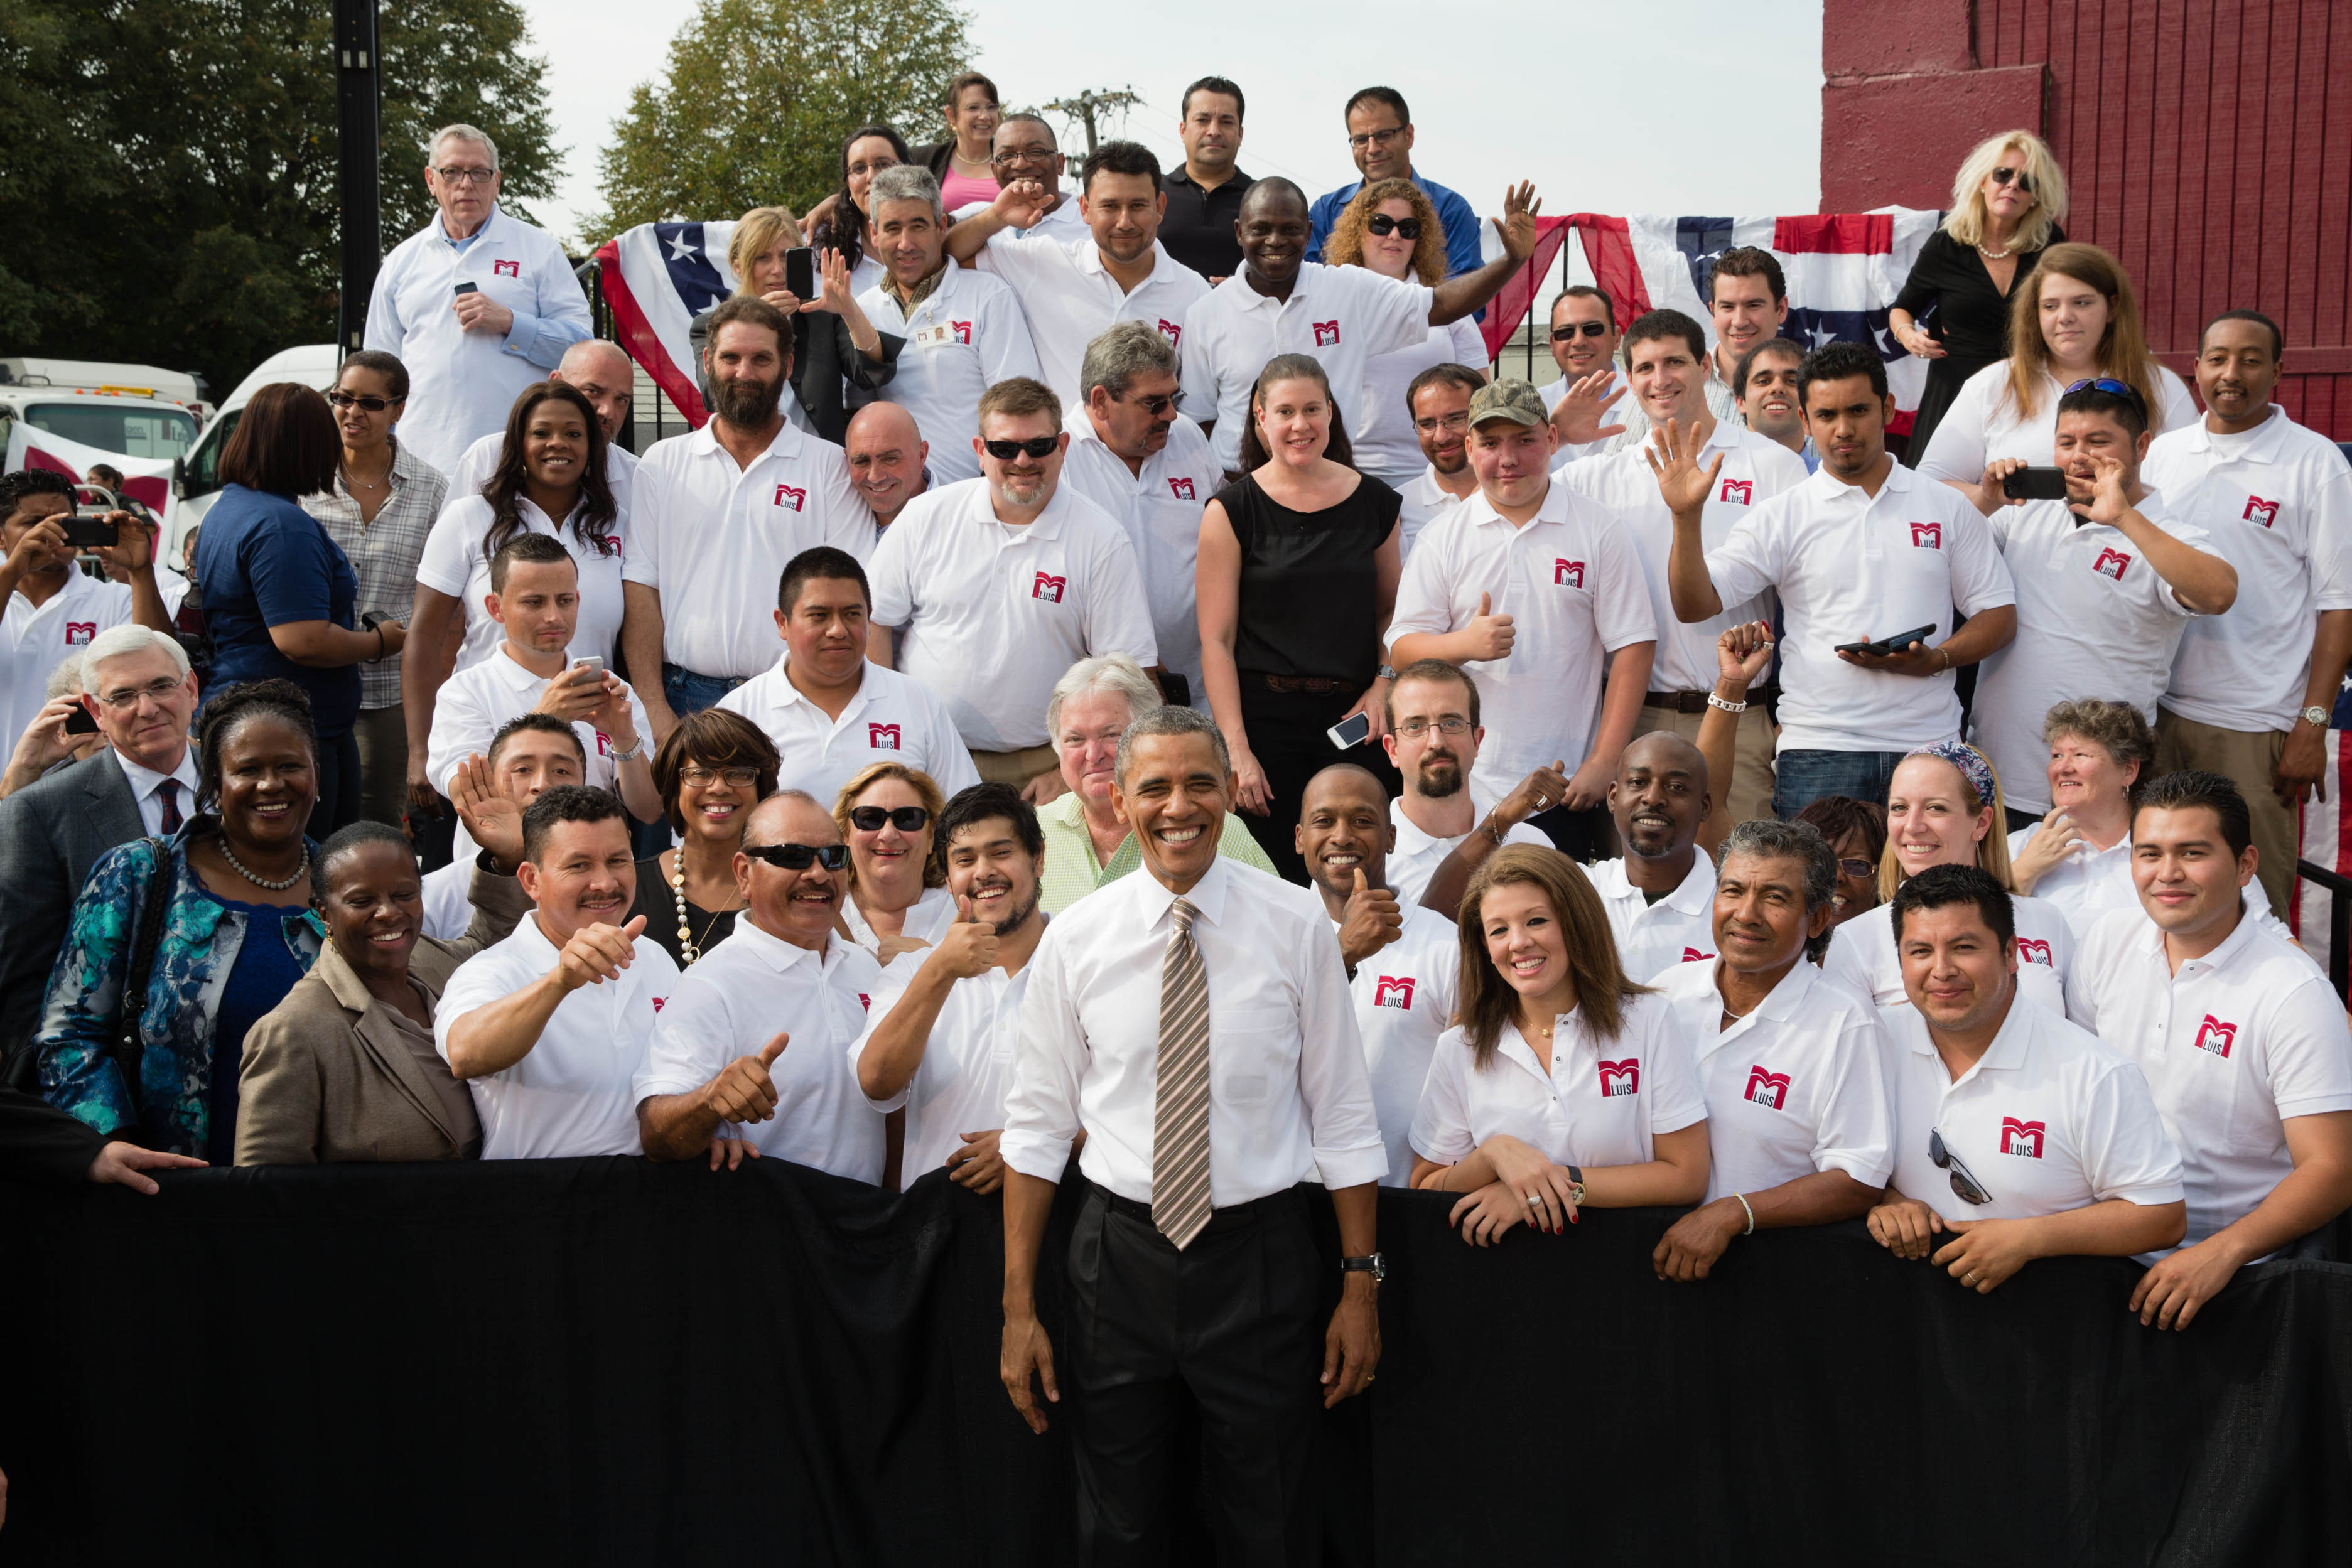 President Obama and employees of M Luis in a group photo